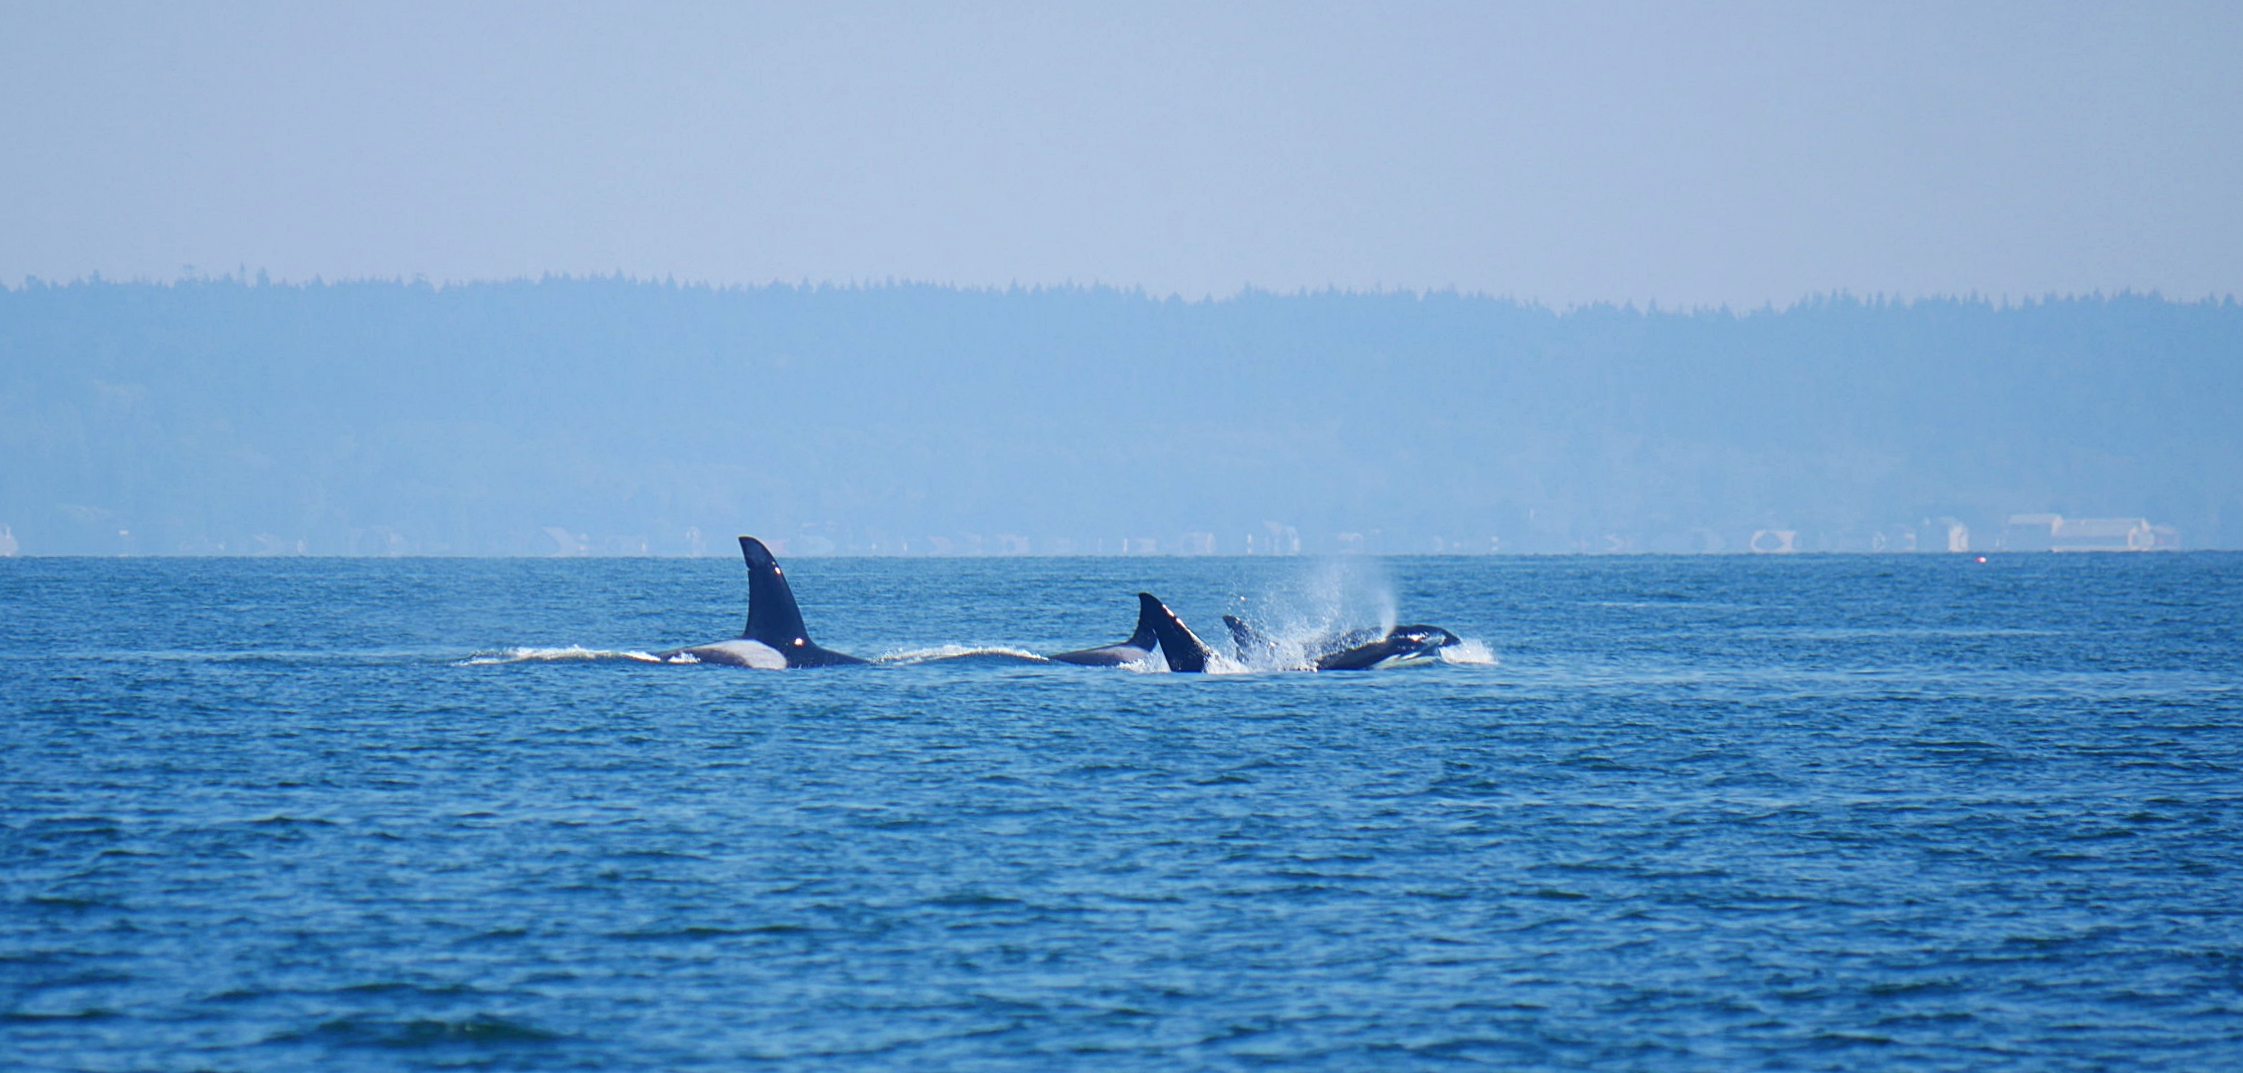 Two pods of orcas traveling together.Photo by Rodrigo Menezes